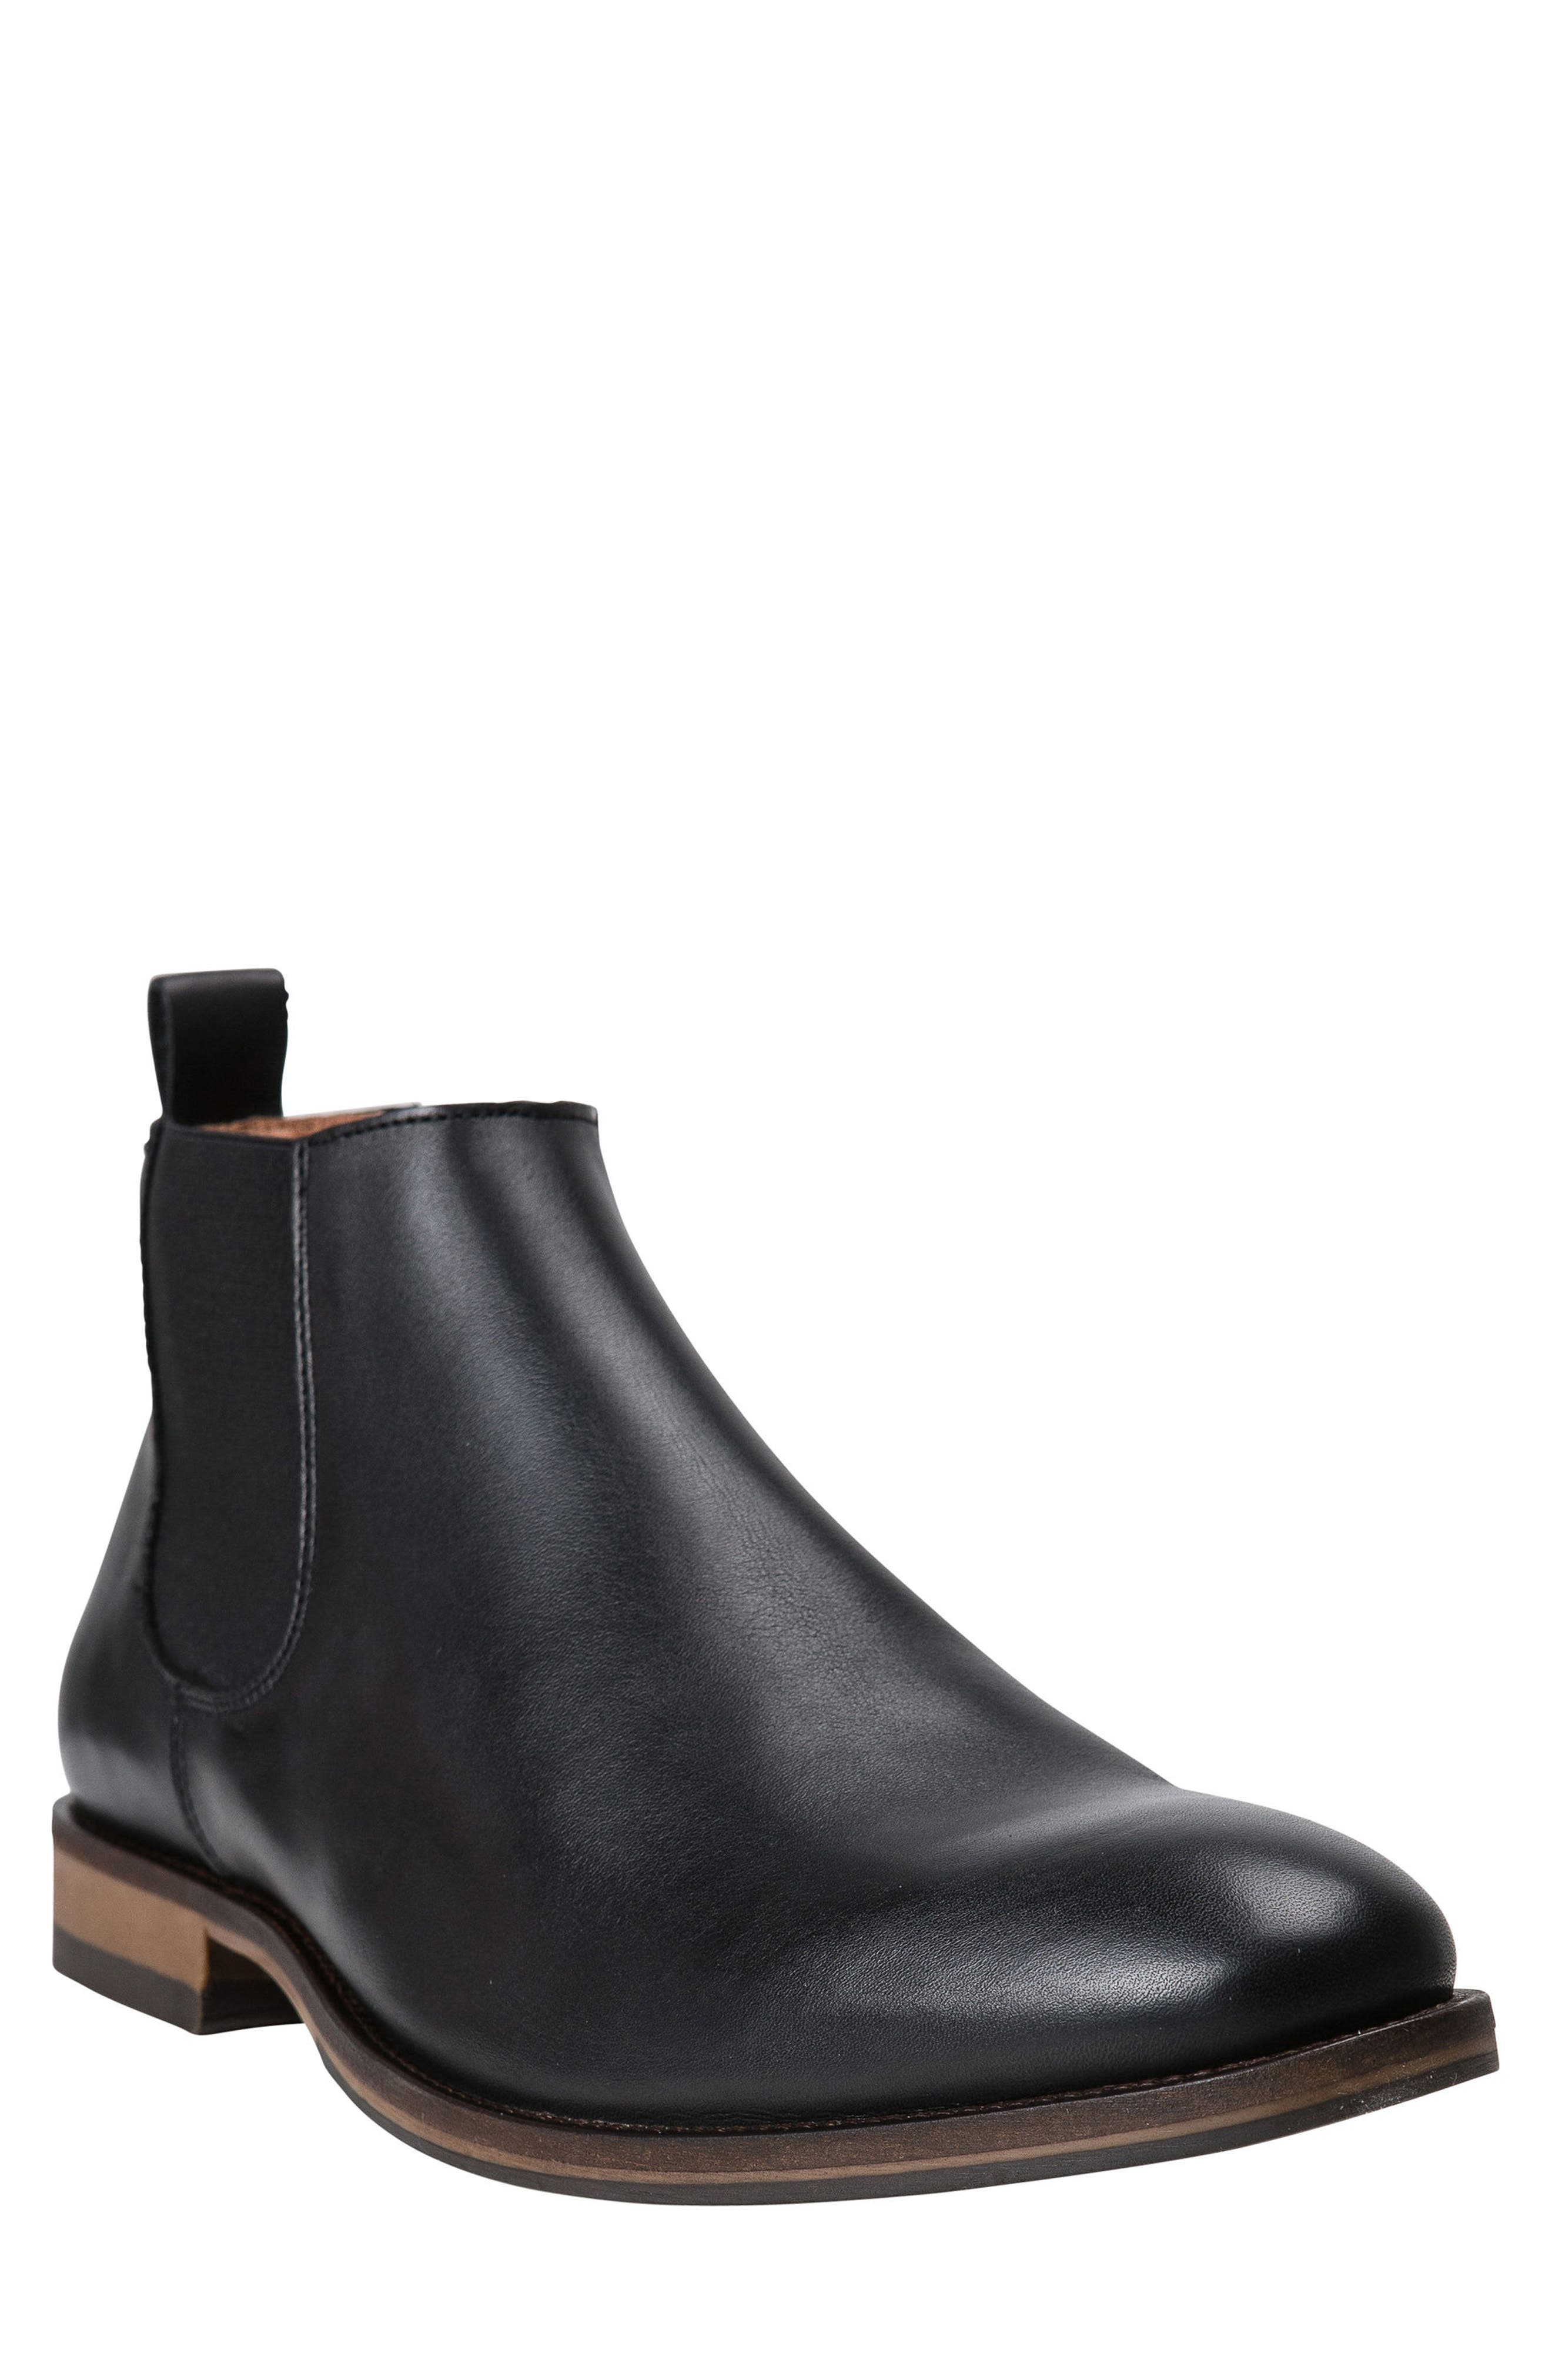 St. Stephens Chelsea Boot,                         Main,                         color, 001